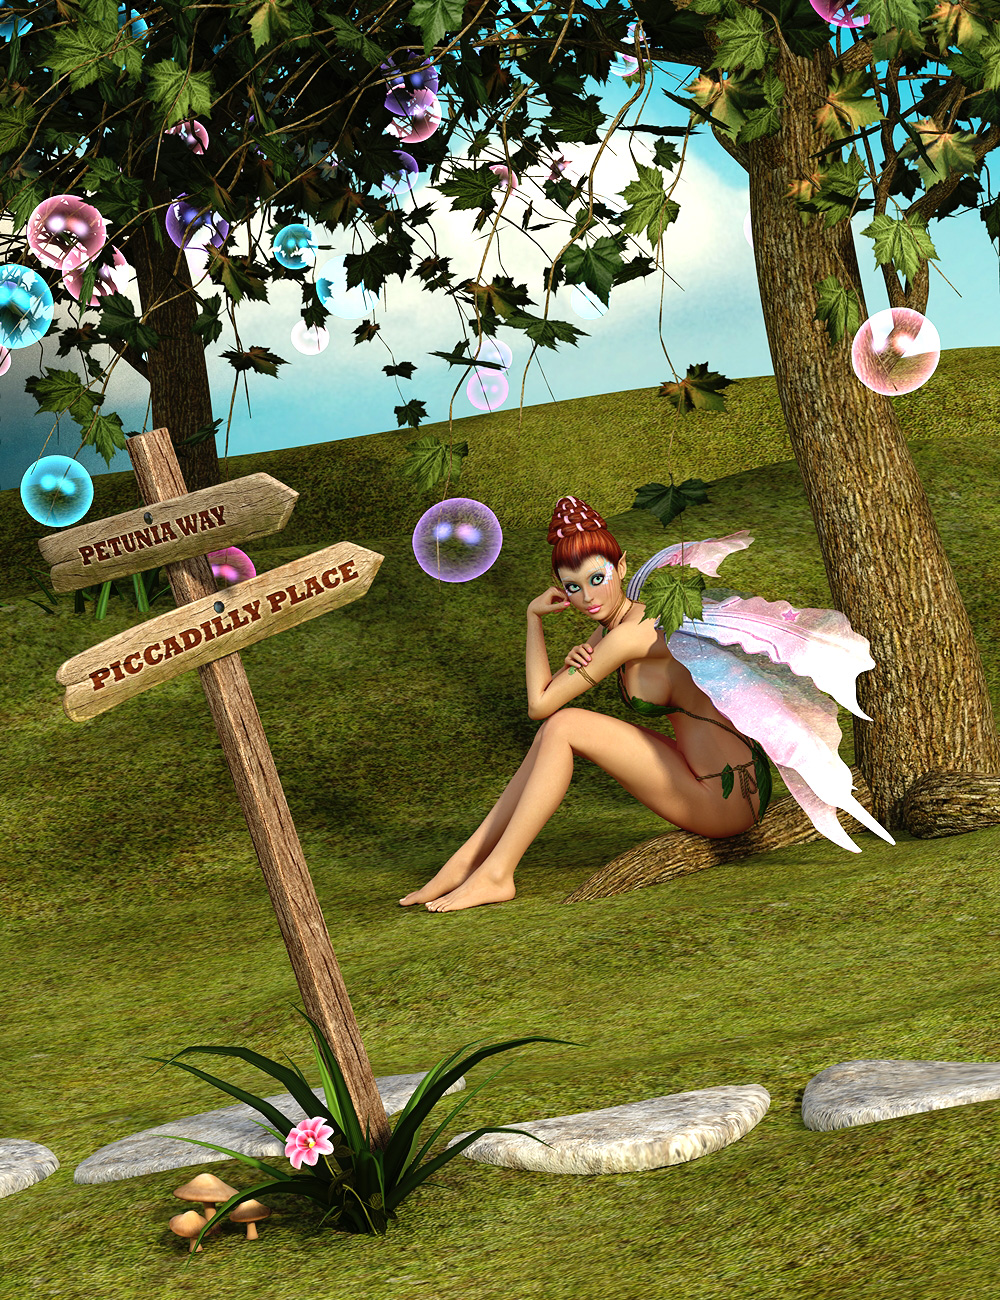 The Enchanted Glade by: ARTCollaborations, 3D Models by Daz 3D